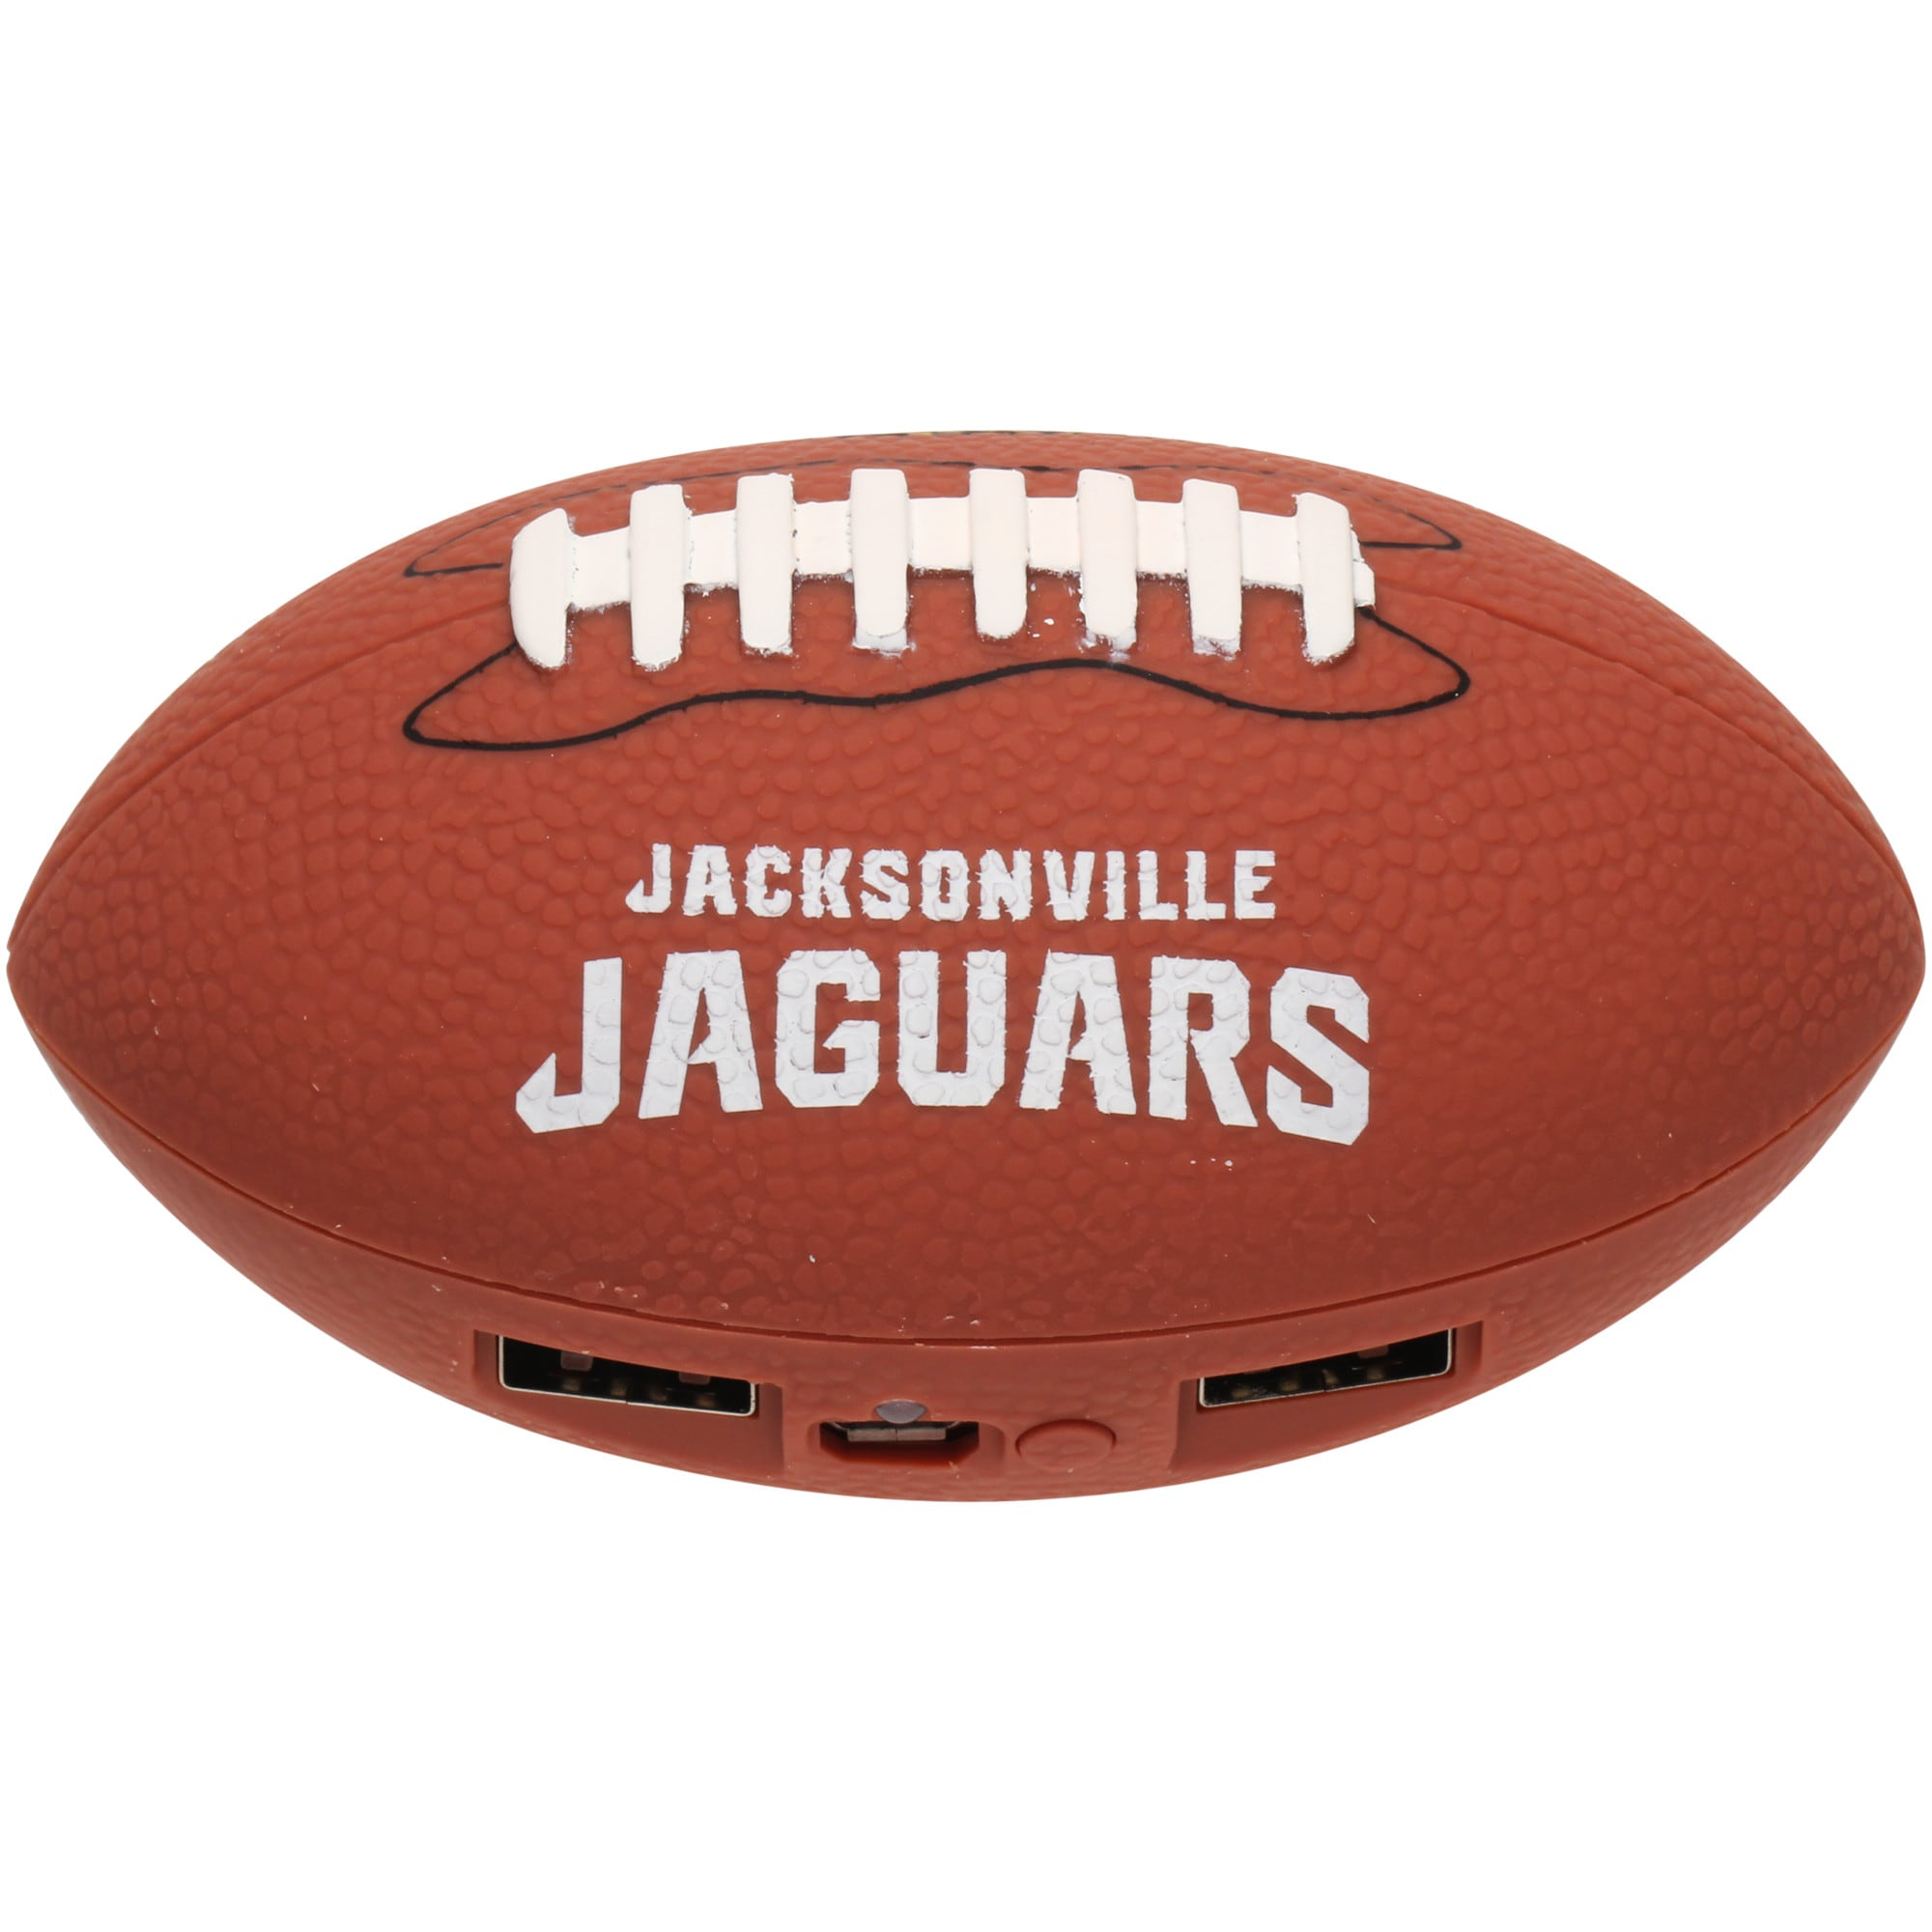 Jacksonville Jaguars Football Cell Phone Charger